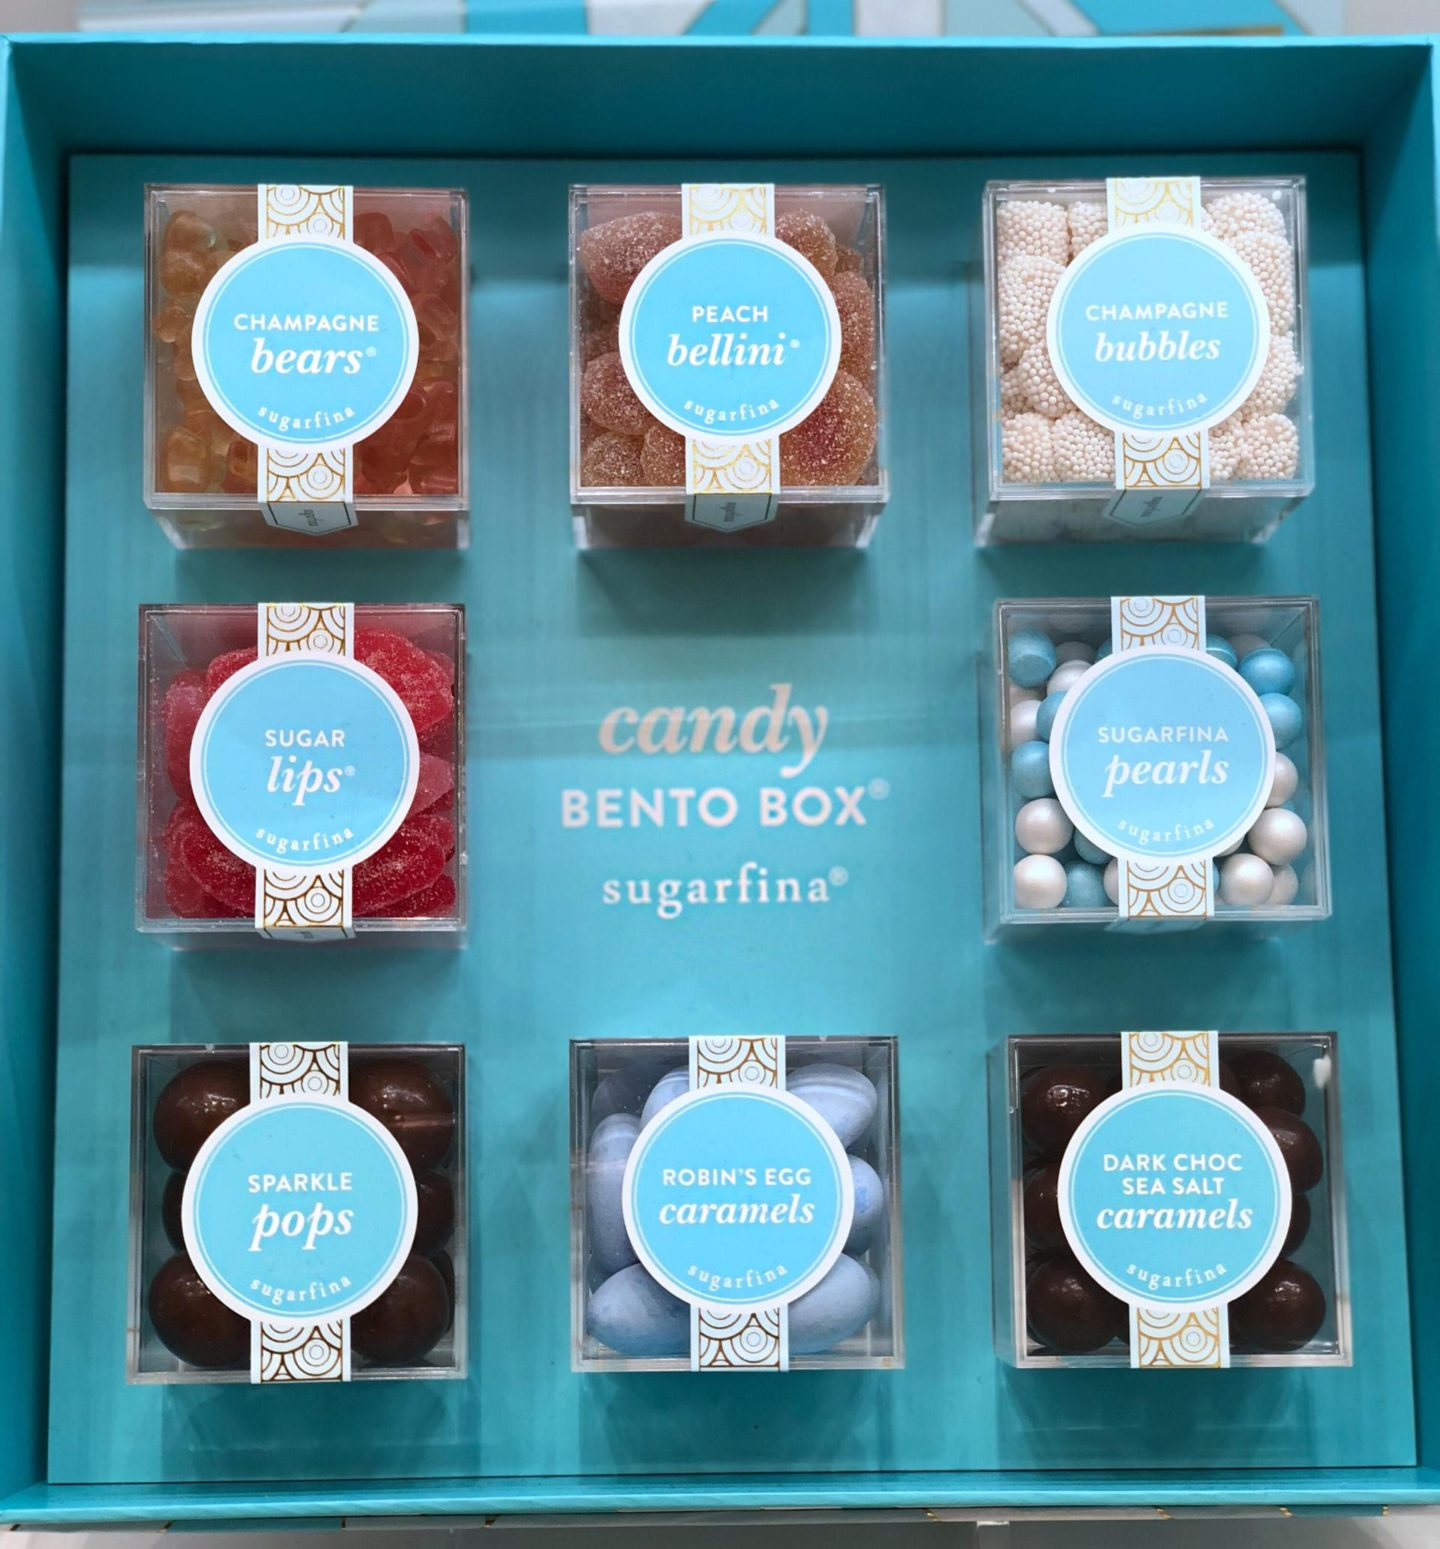 Sugarfina at Rockefeller Center